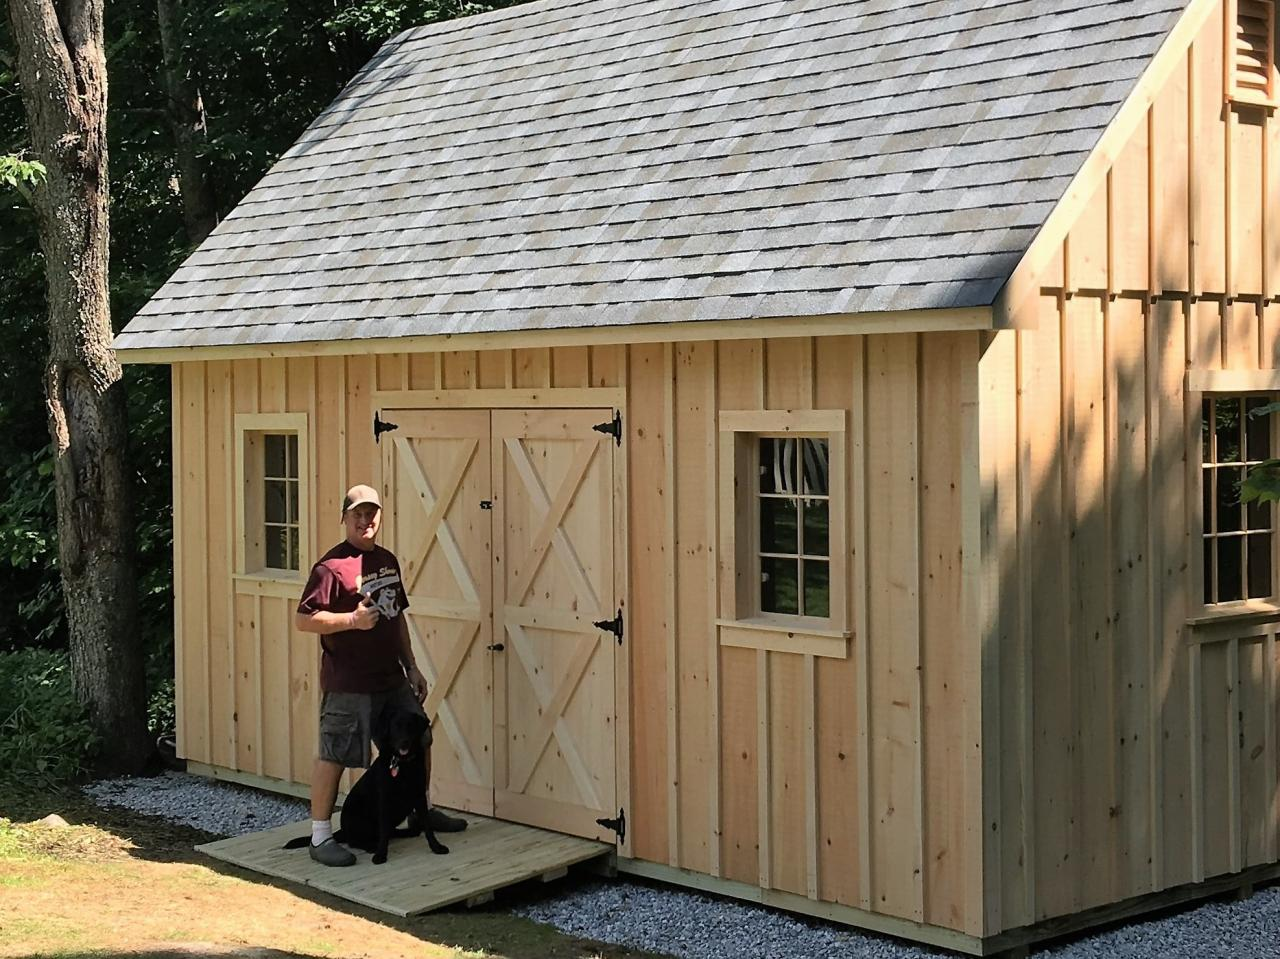 WHY TO CHOOSE CUSTOM SHEDS